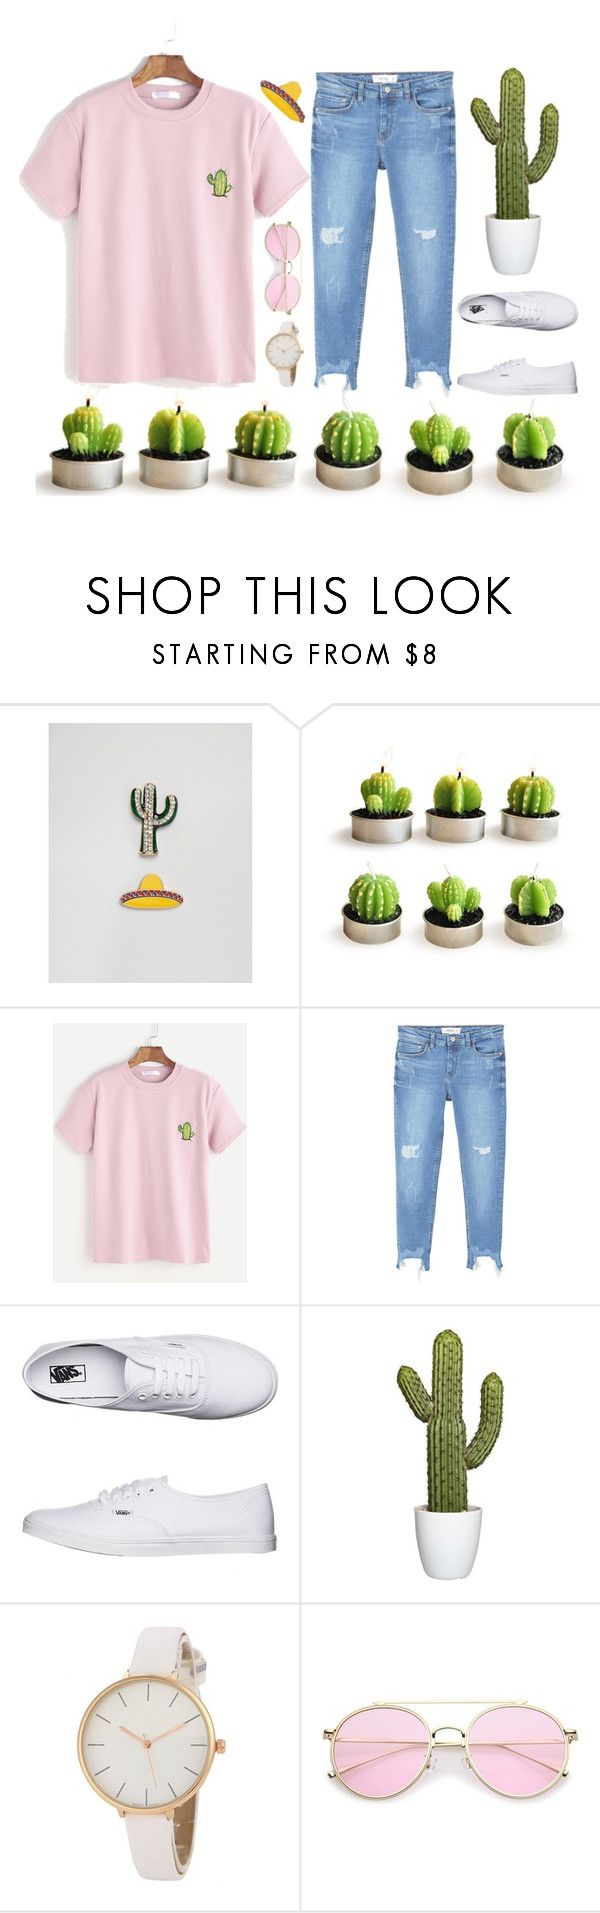 """Cactus 🌵"" by tegan-nottle ❤ liked on Polyvore featuring ASOS, MANGO, Vans, Cactus, trend, women and fashionset"